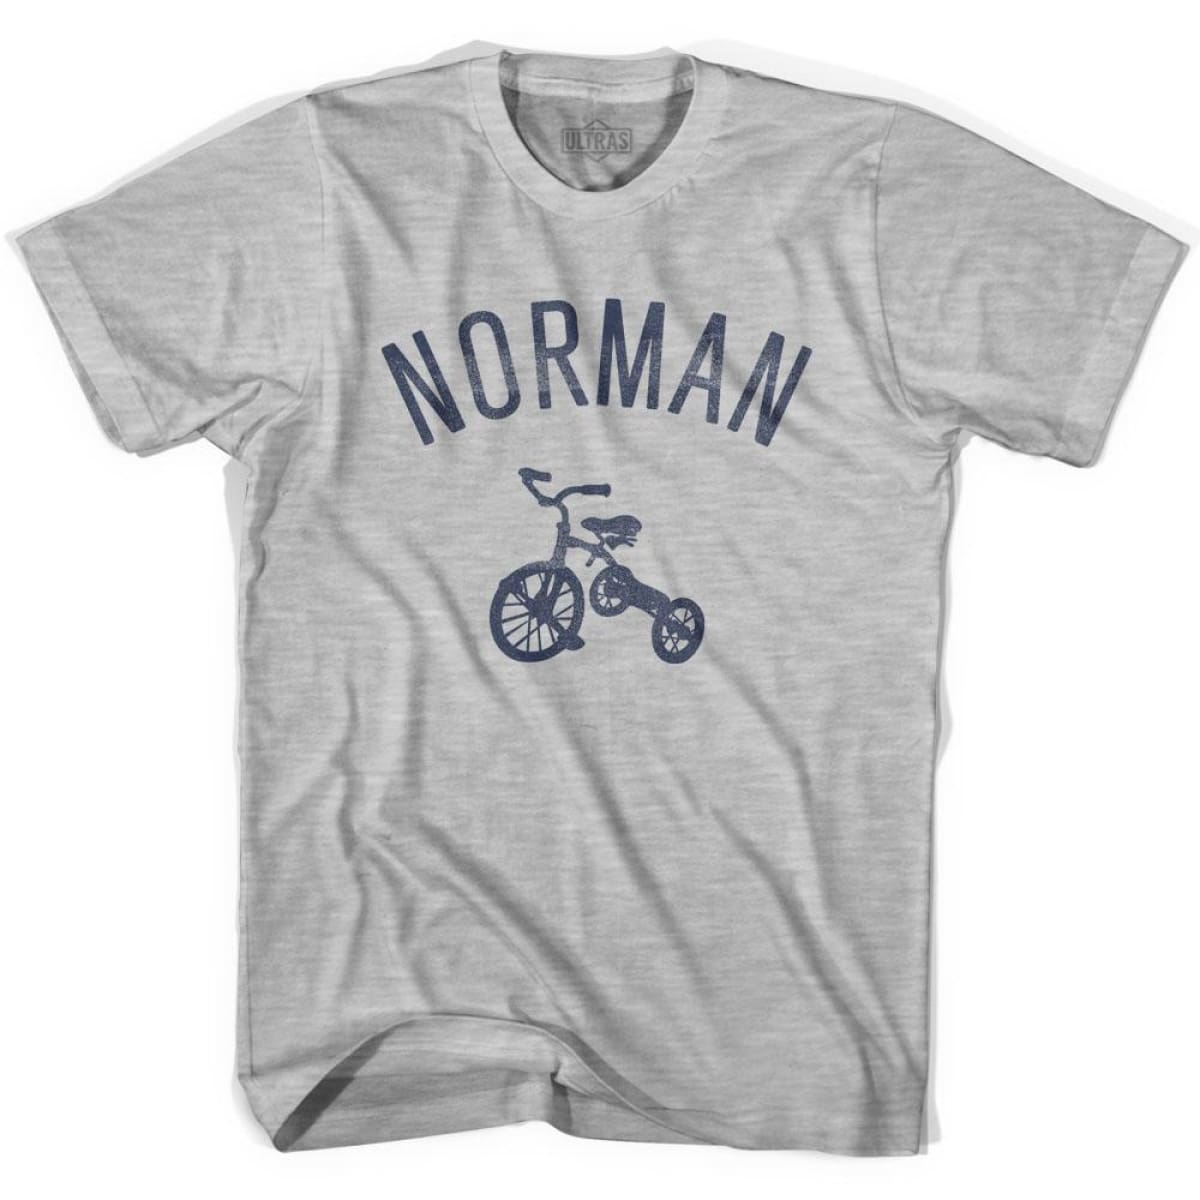 Norman City Tricycle Youth Cotton T-shirt - Tricycle City